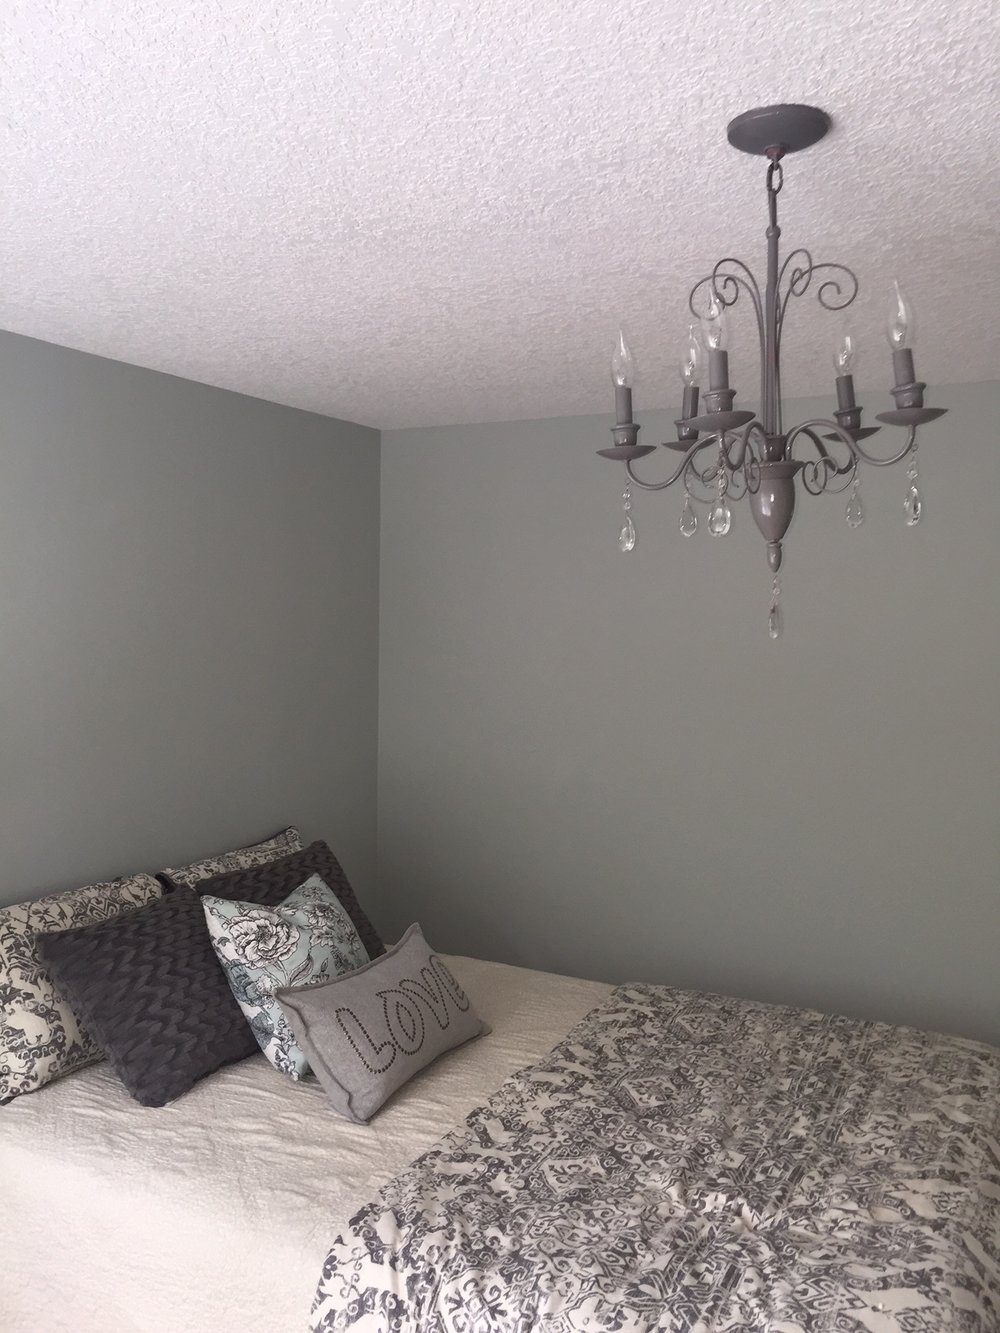 Bedroom Makeover. Before and After.